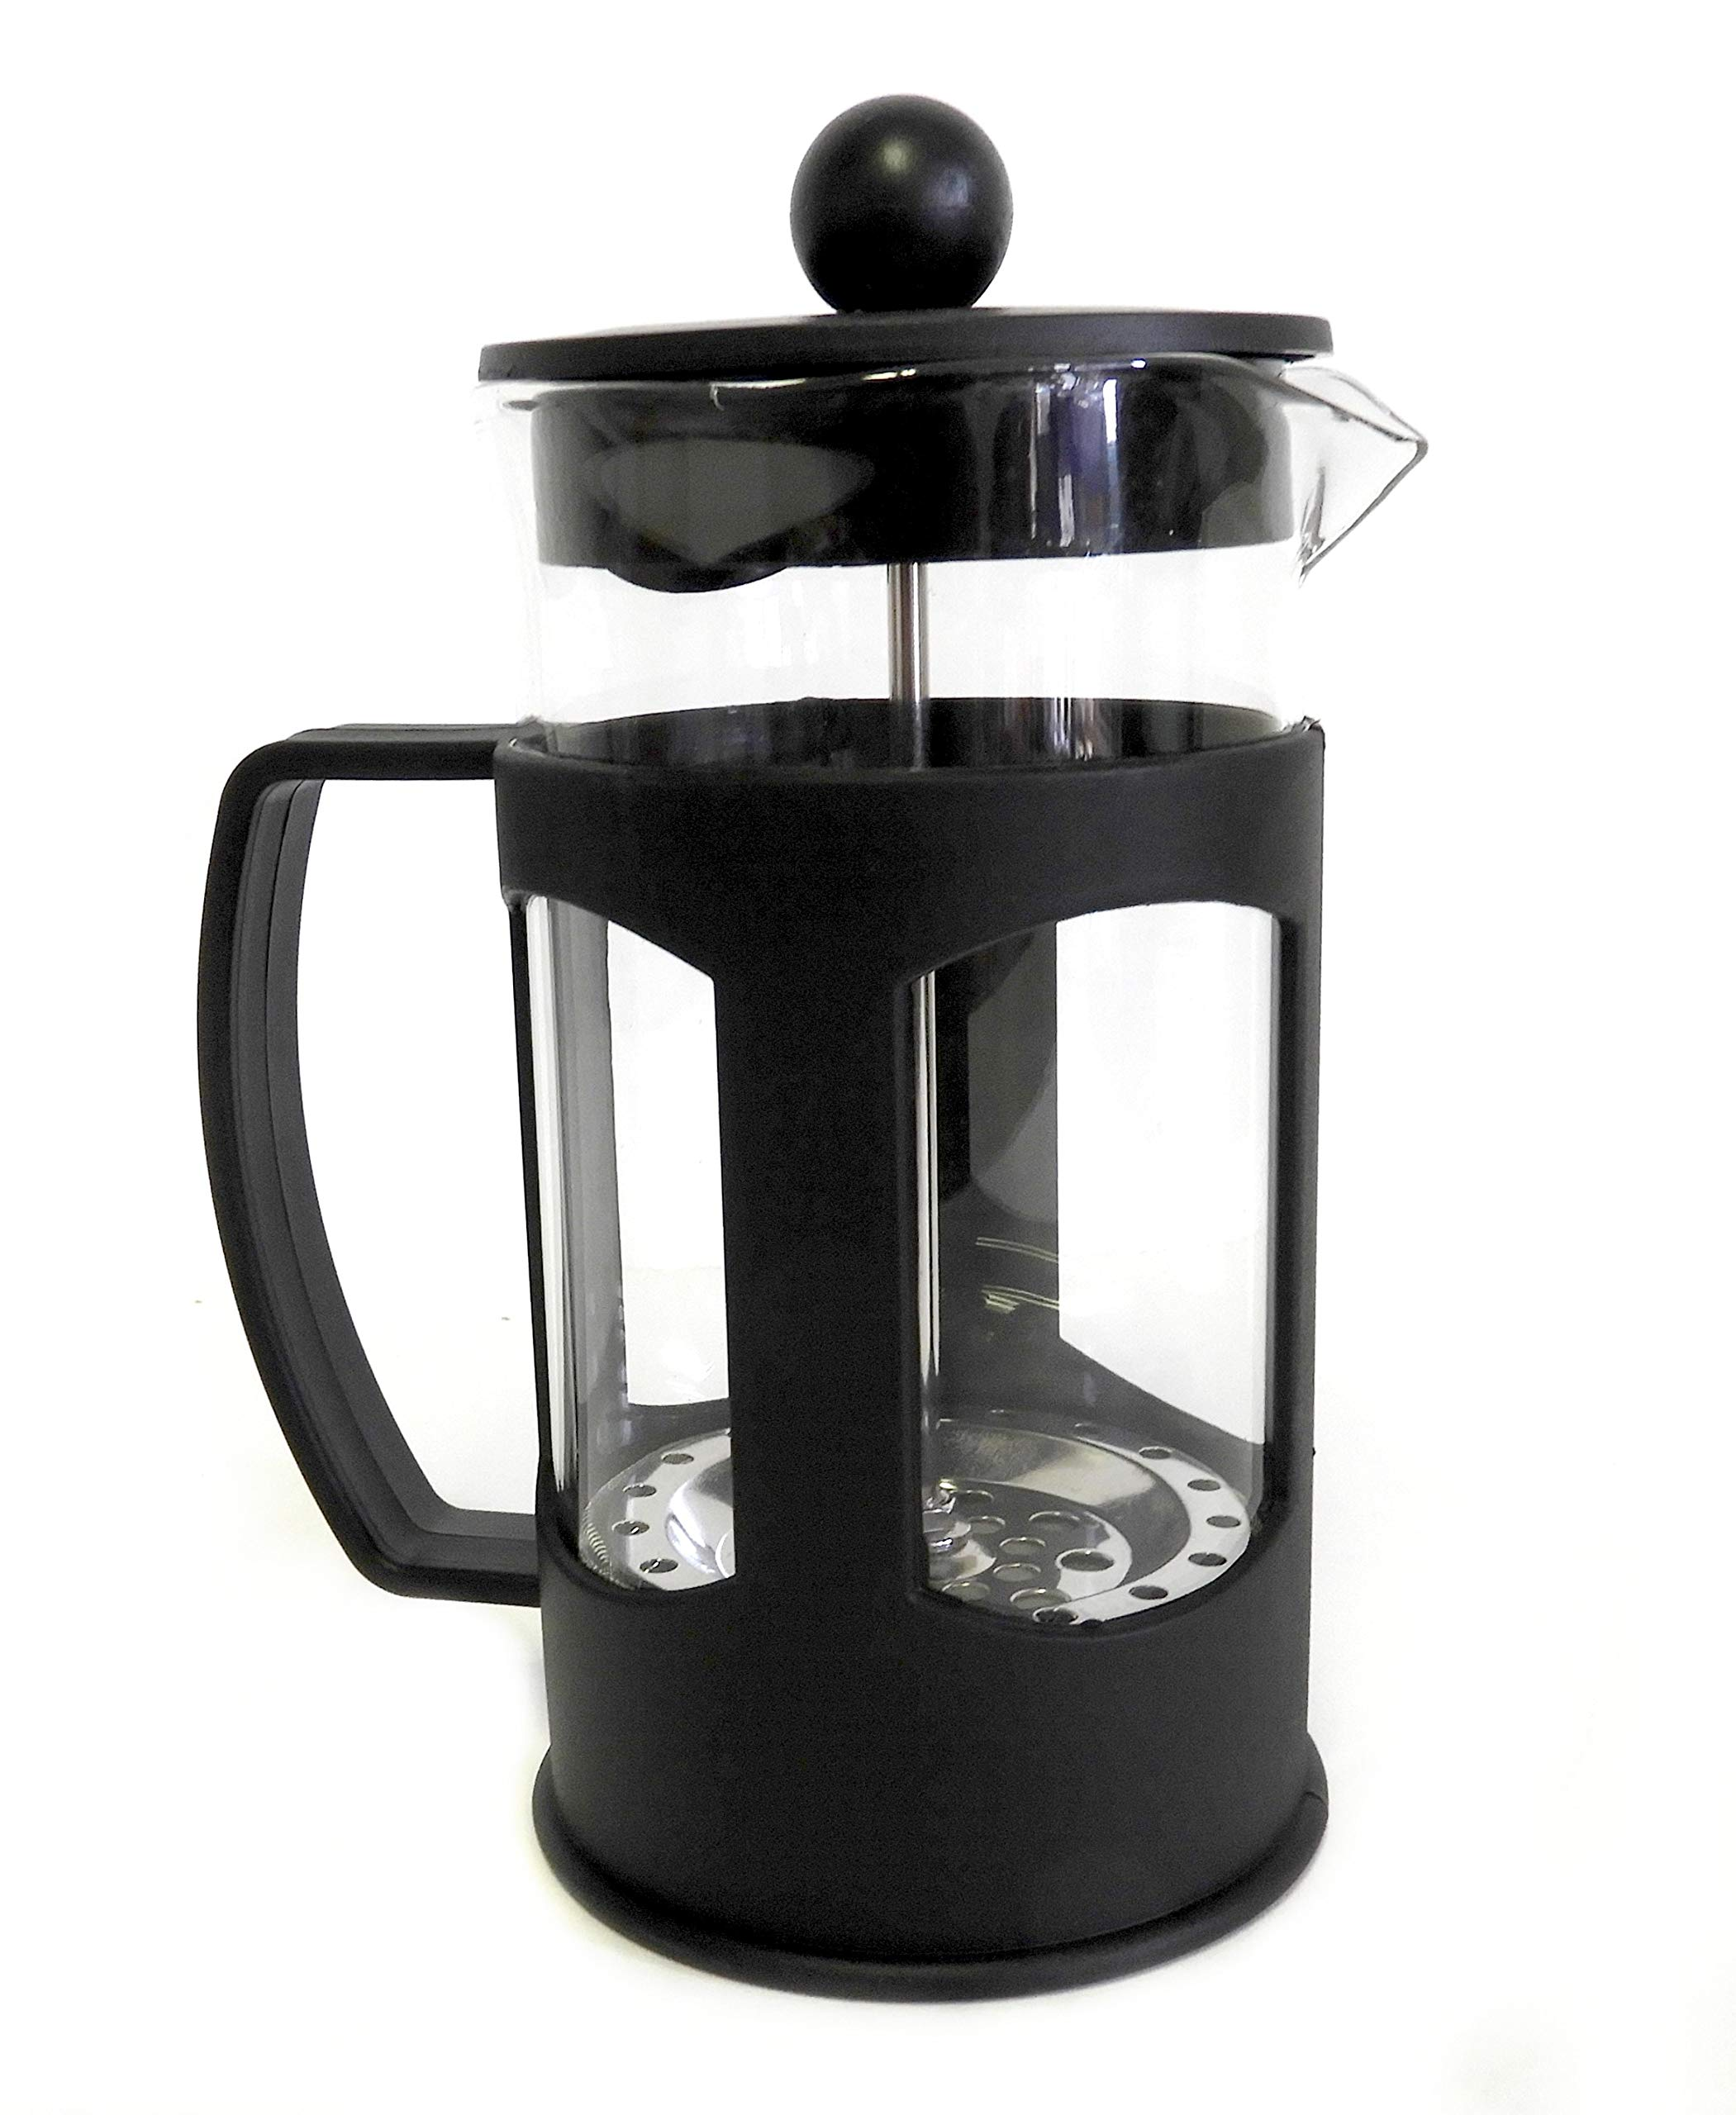 French Press with Protective Plastic Exterior - Brew Fresh Coffee and Tea 20 Oz by Home Style